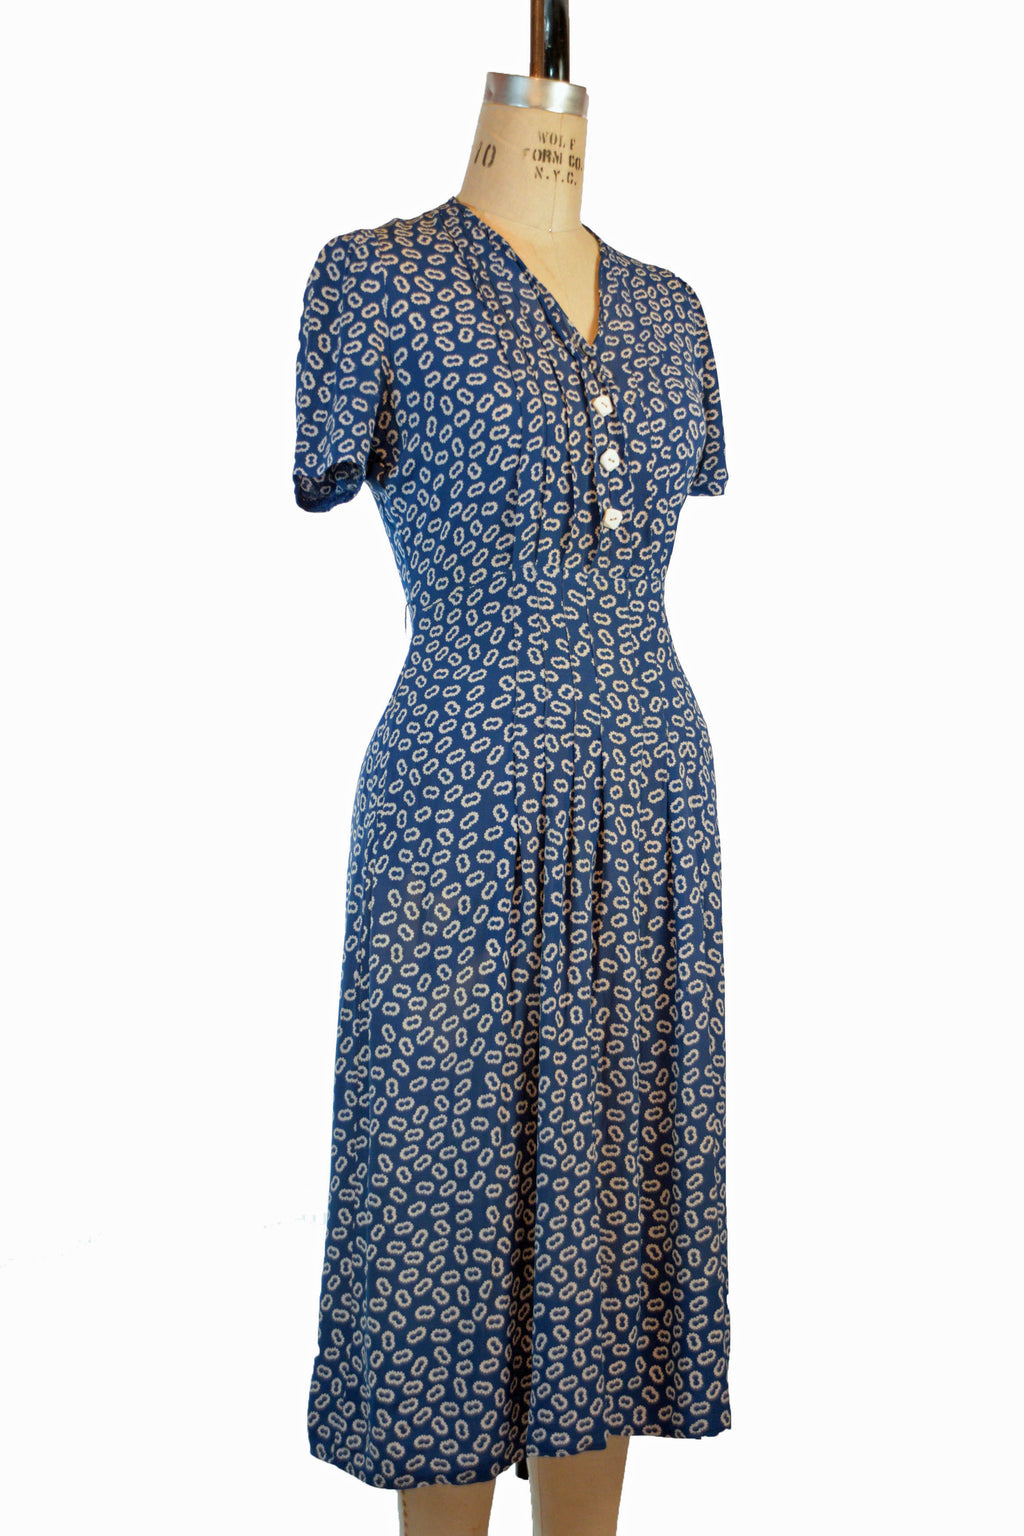 Charming Late 1930s Rayon Dress Set with Puffed Sleeves and Matching Grosgrain Trimmed Jacket